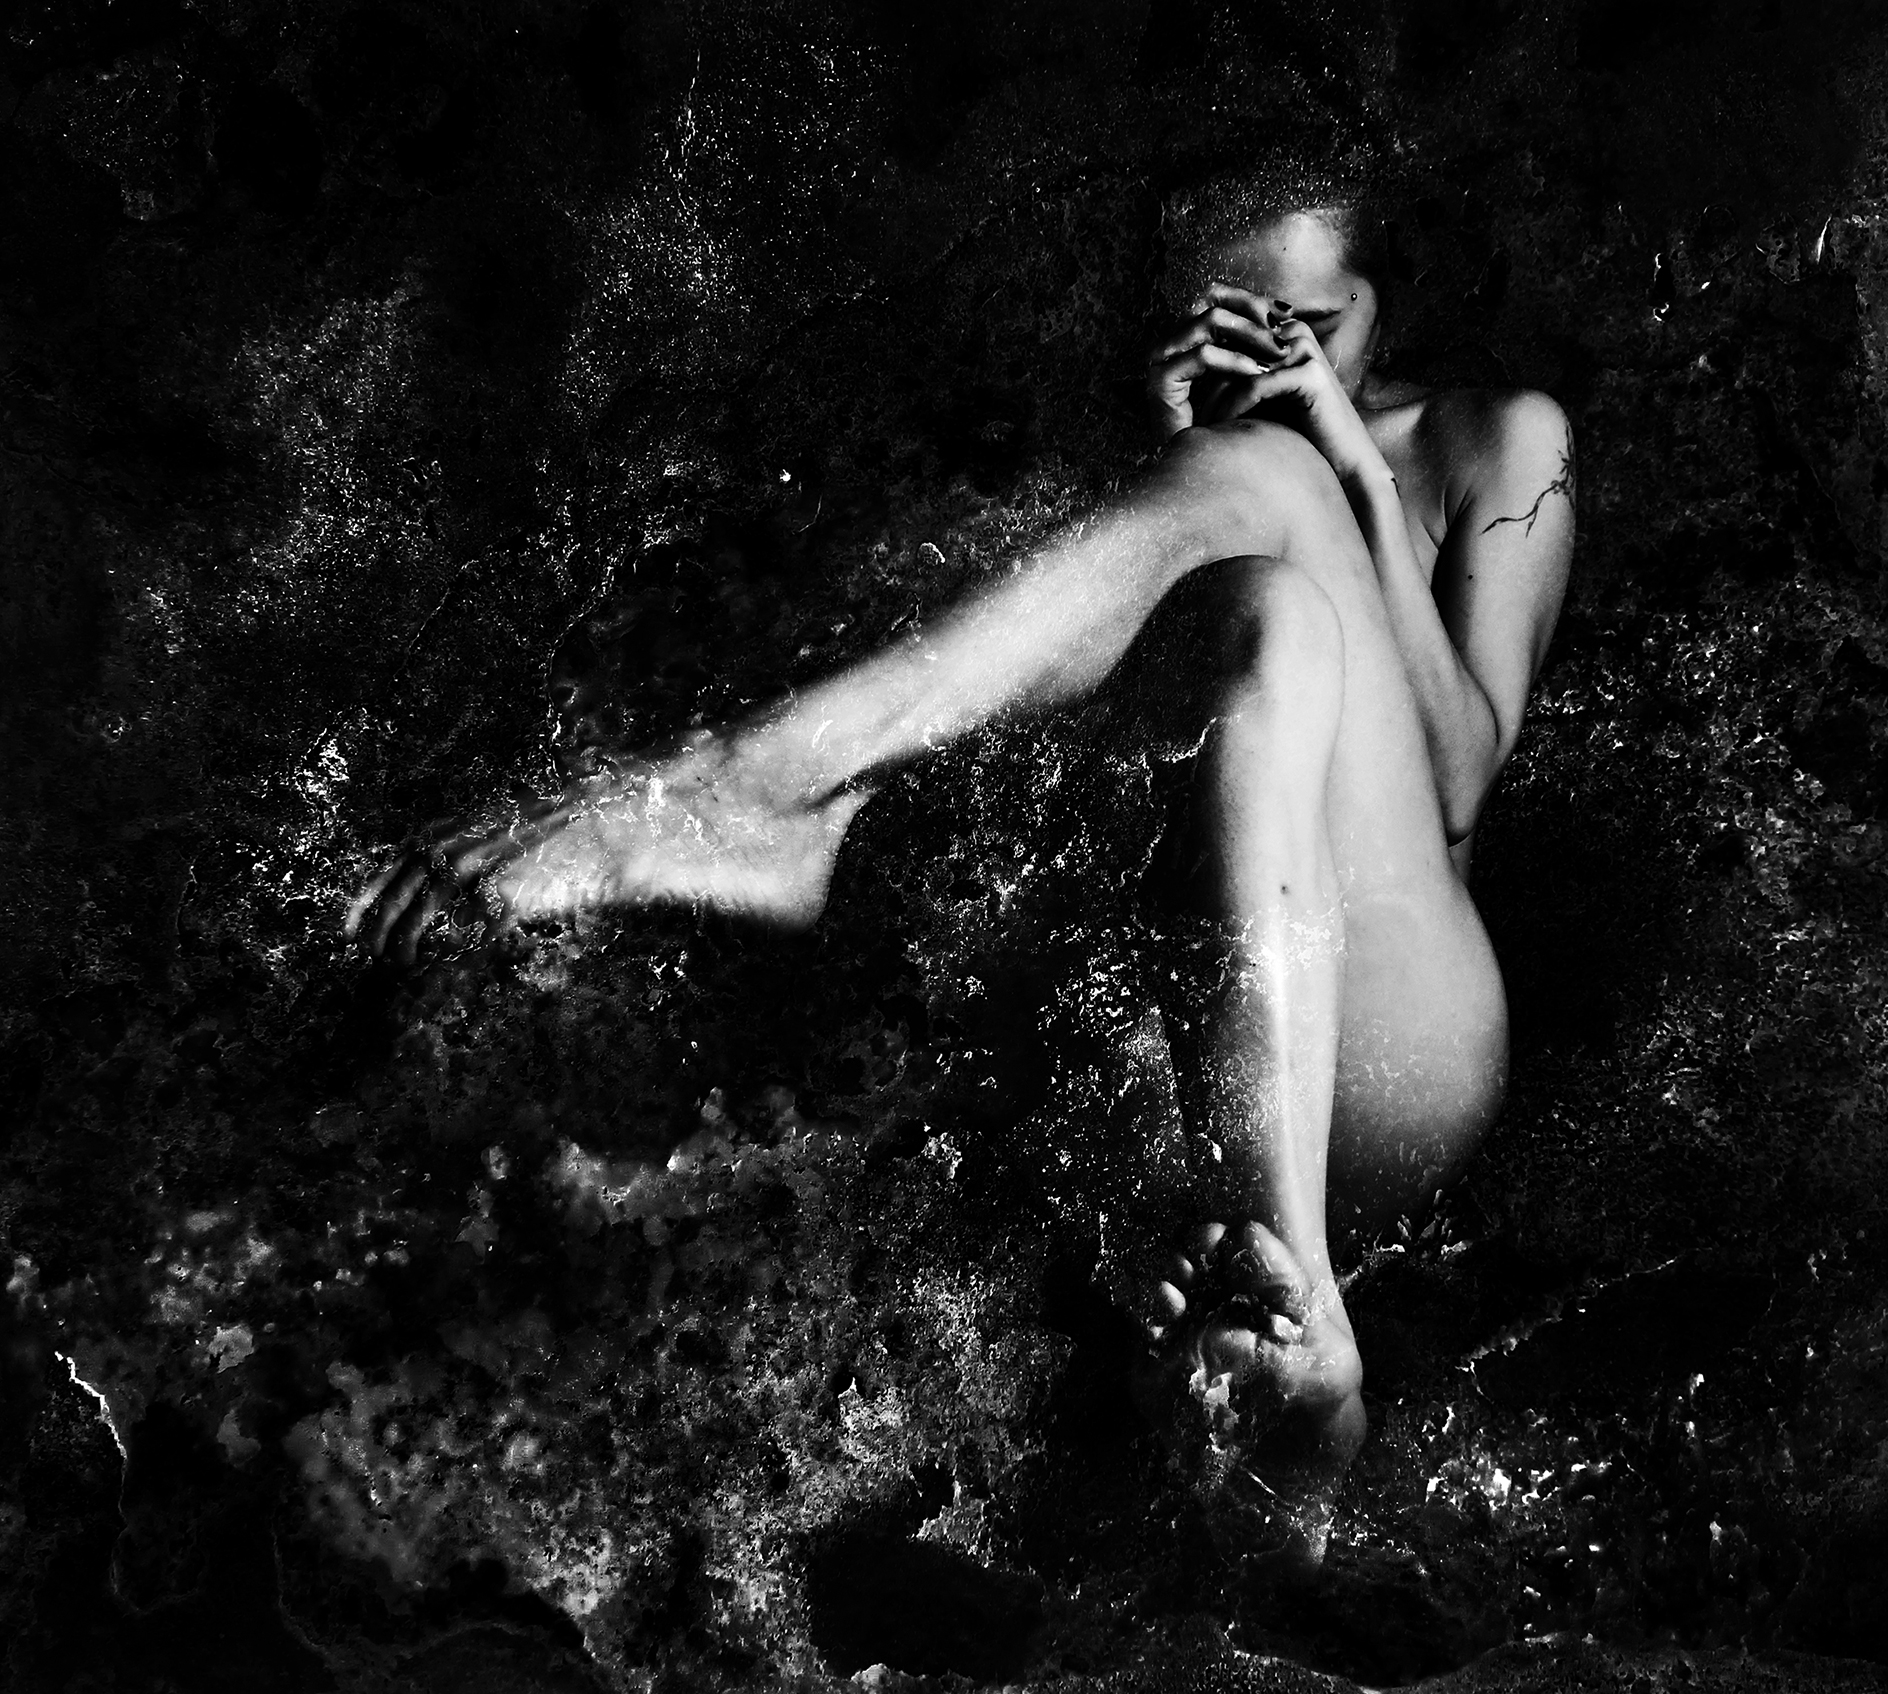 Düsterer / suelynee ho 何書伶 Artwork photographer nude art